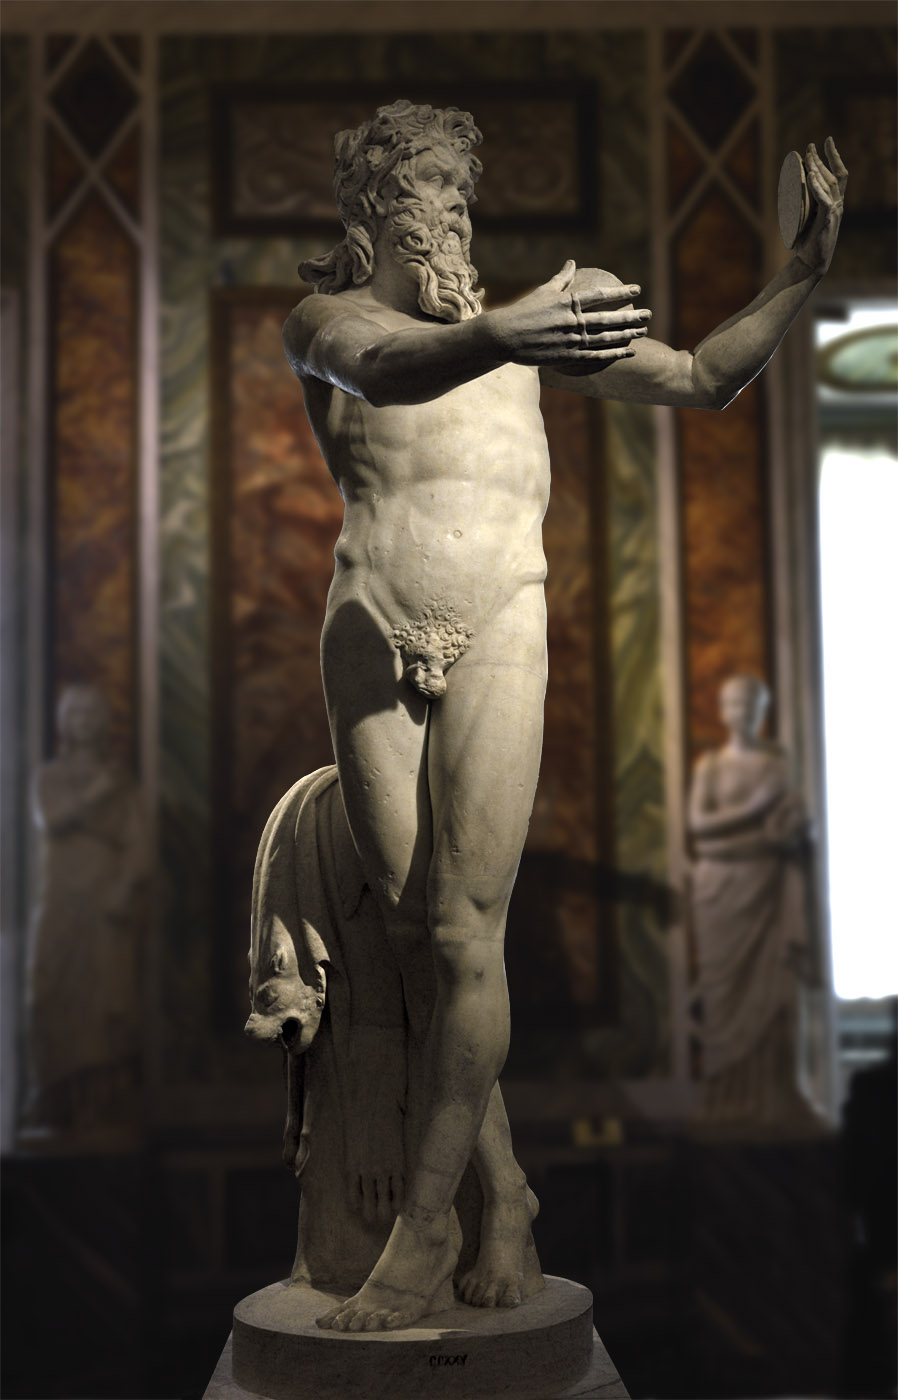 Dancing satyr. Pentelic marble. Roman copy ca 220 CE after a Greek original by Lysippos of the 4th century BCE (?).  Inv. No. CCXXV. Rome, Museum and Gallery of Villa Borghese, Room VIII